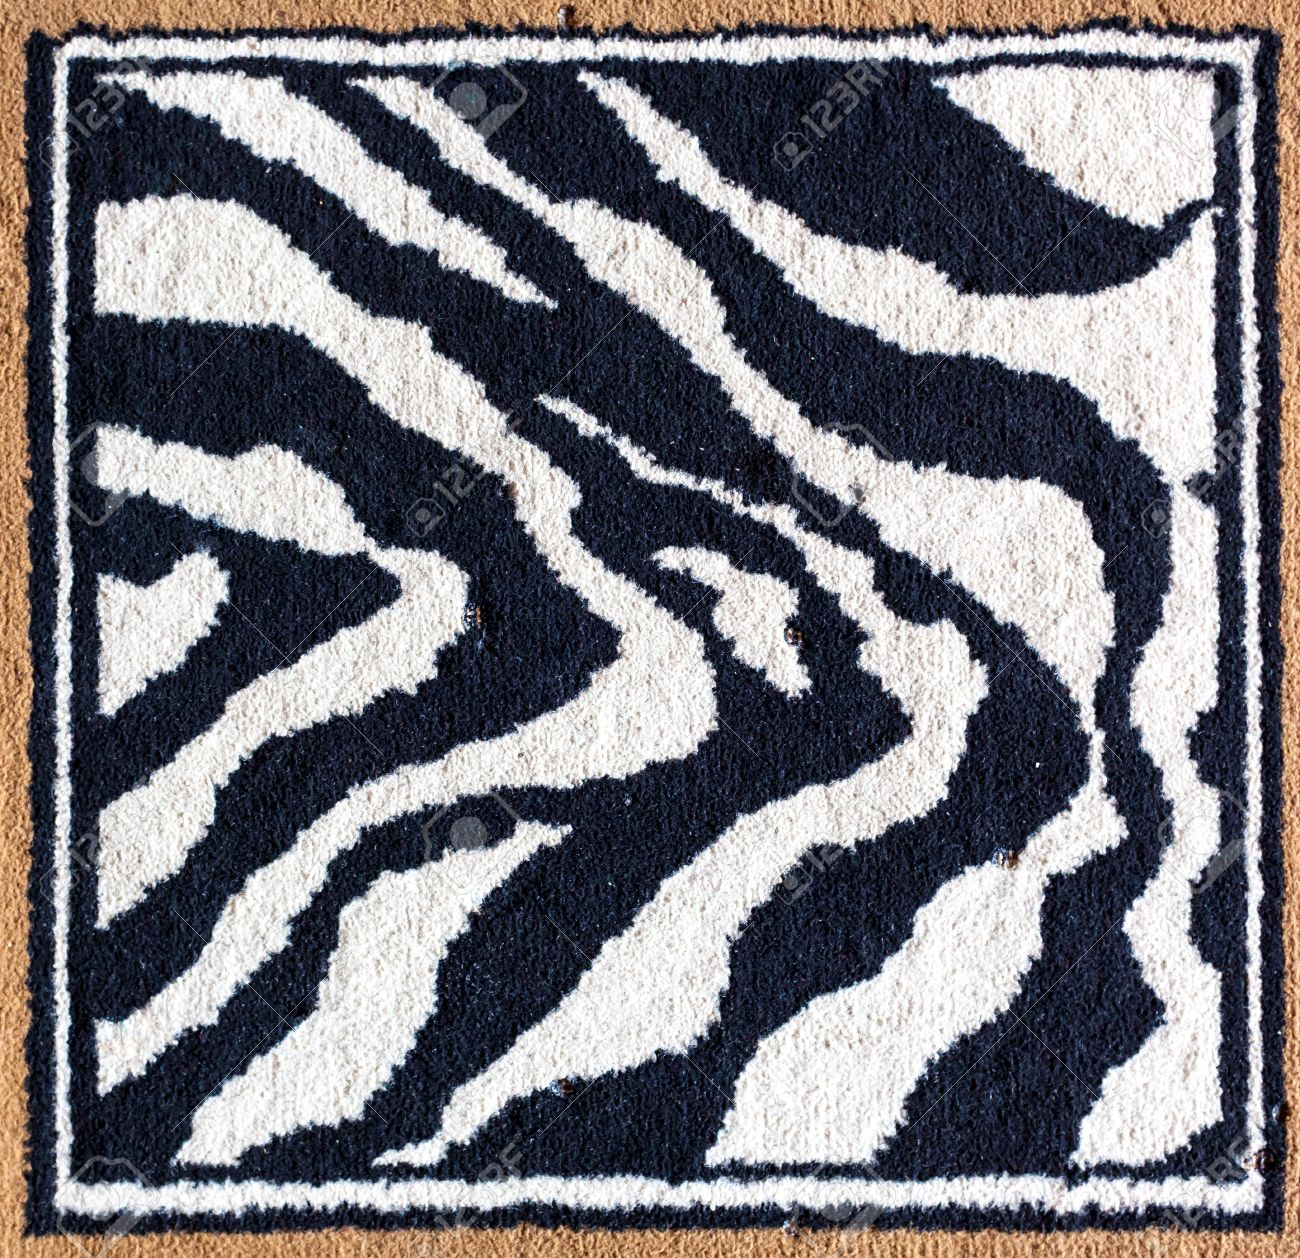 black rug texture. Black And White Tiger Pattern Rug Texture Surface Stock Photo - 20073557